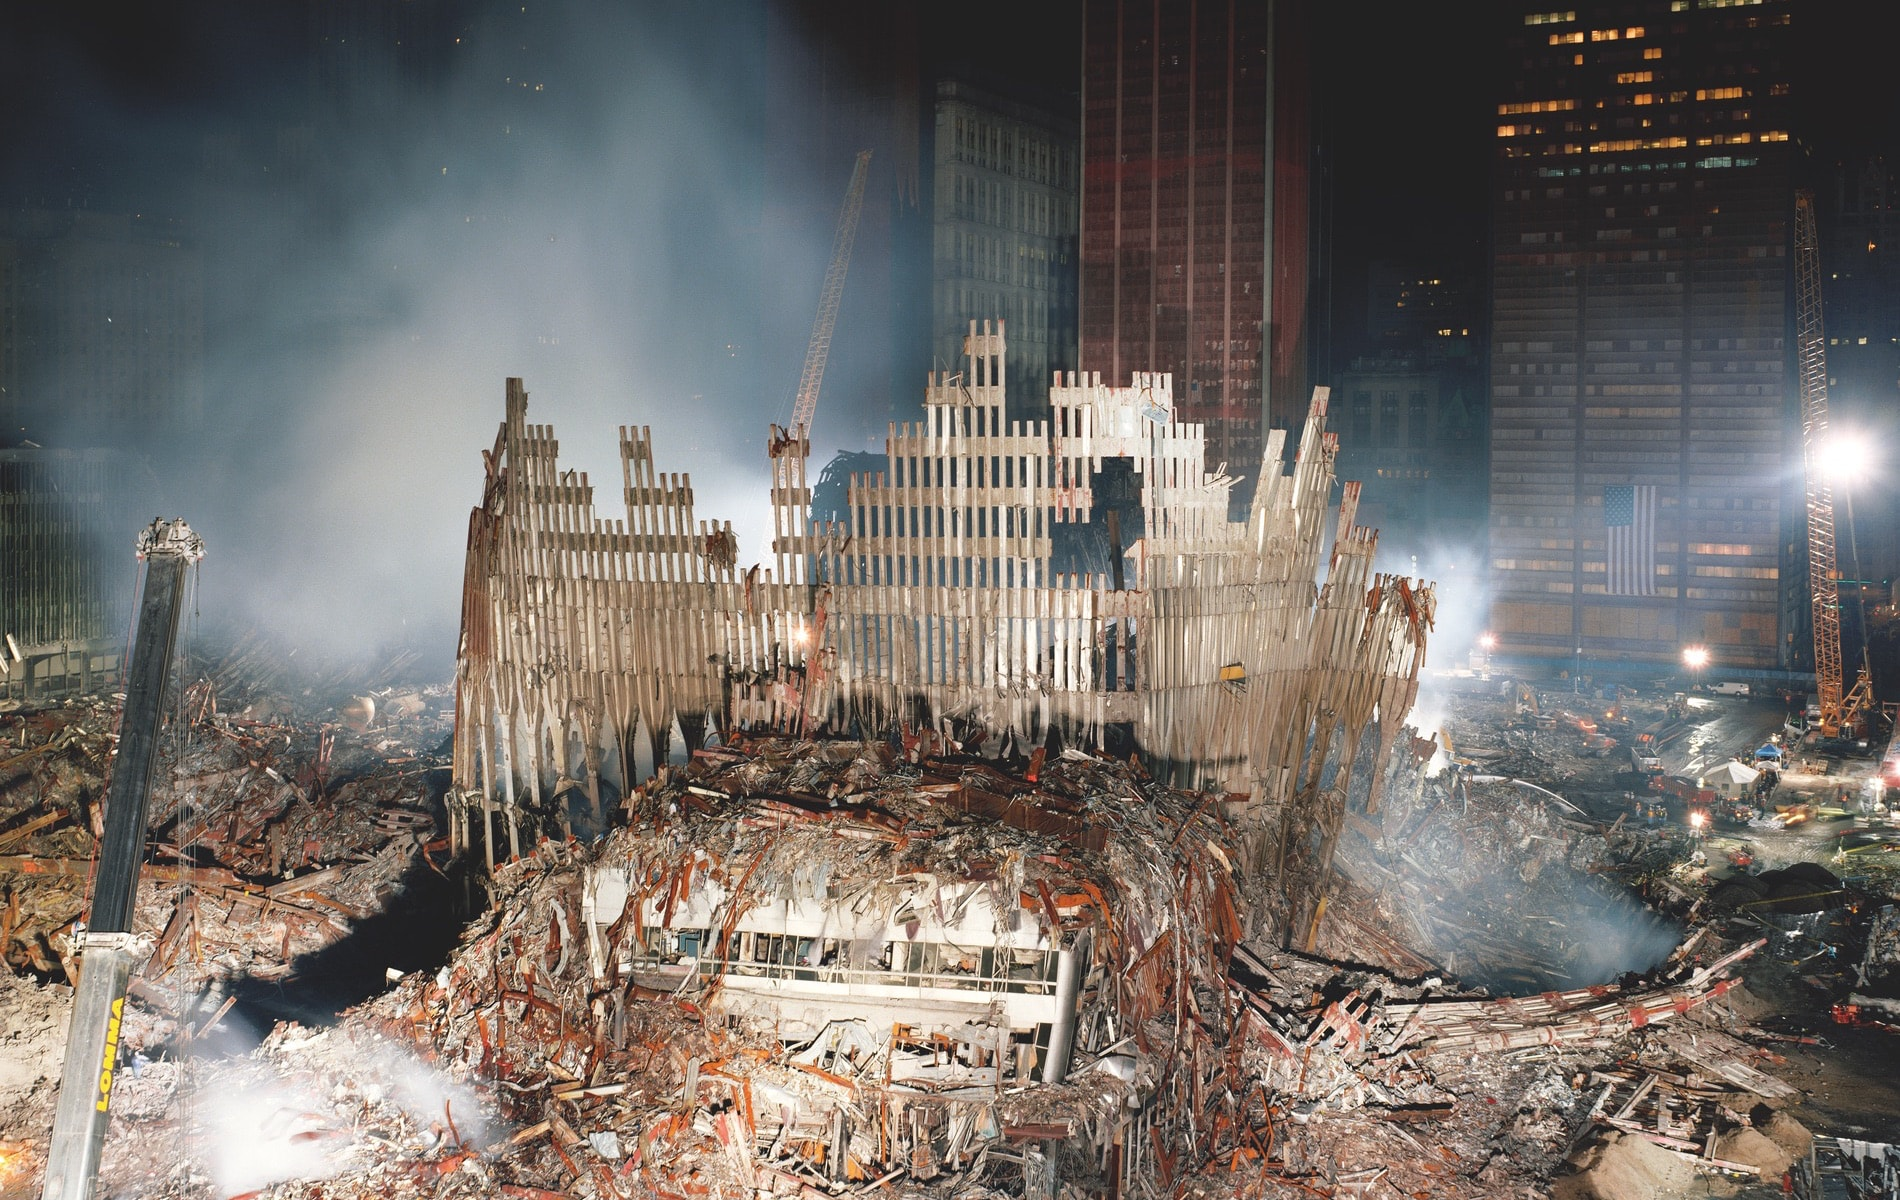 The base of the North Tower, looking east toward the Woolworth Building from Ground Zero in New York City, 2001 © Joel Meyerowitz